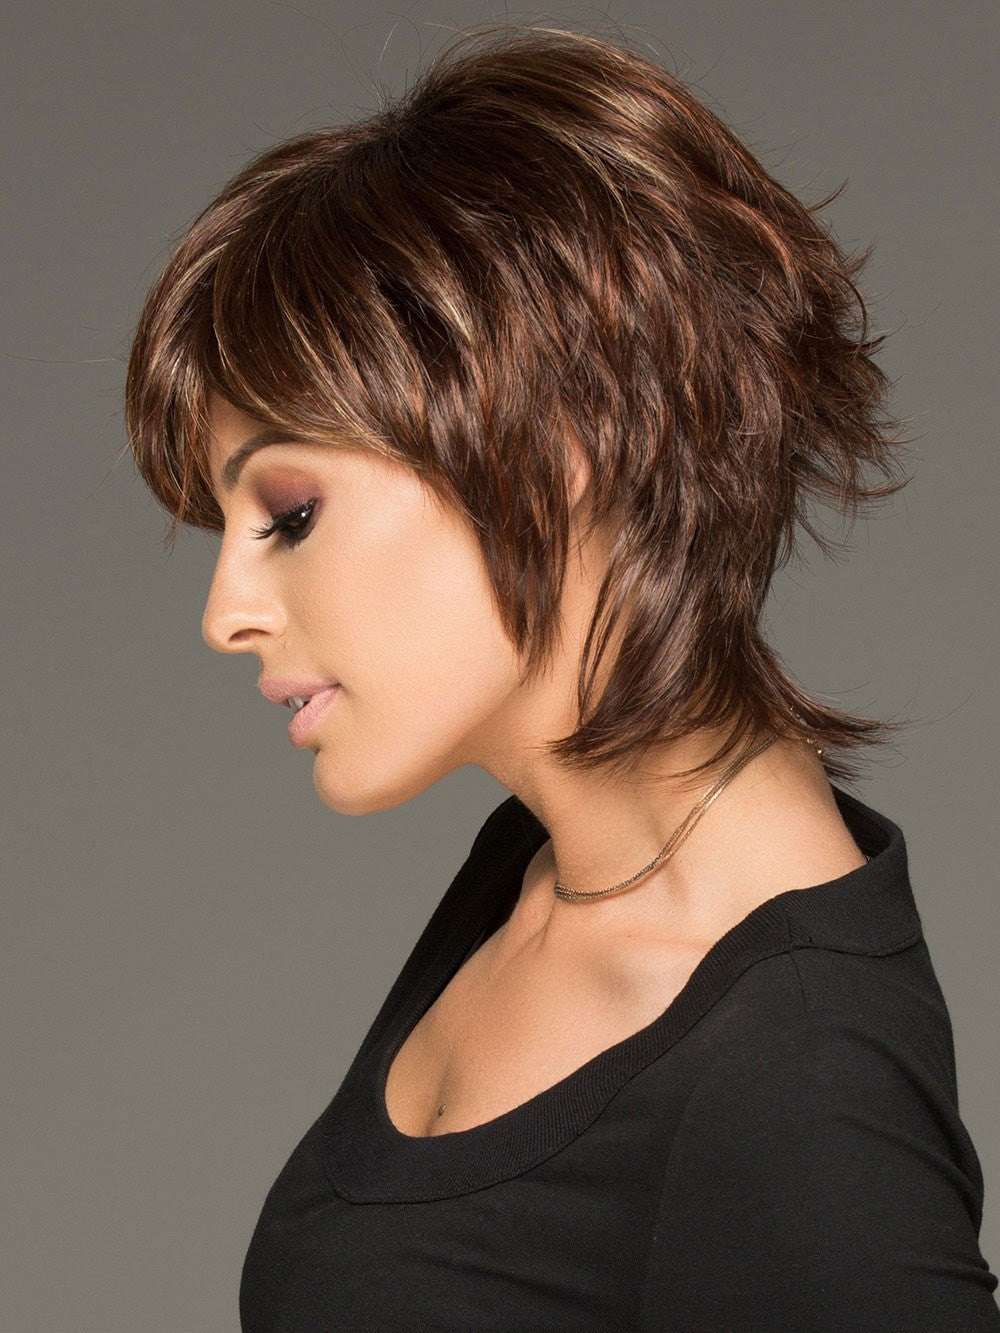 his cutting edge hair style has gorgeous layers and a long wispy nape for texture & easy styling